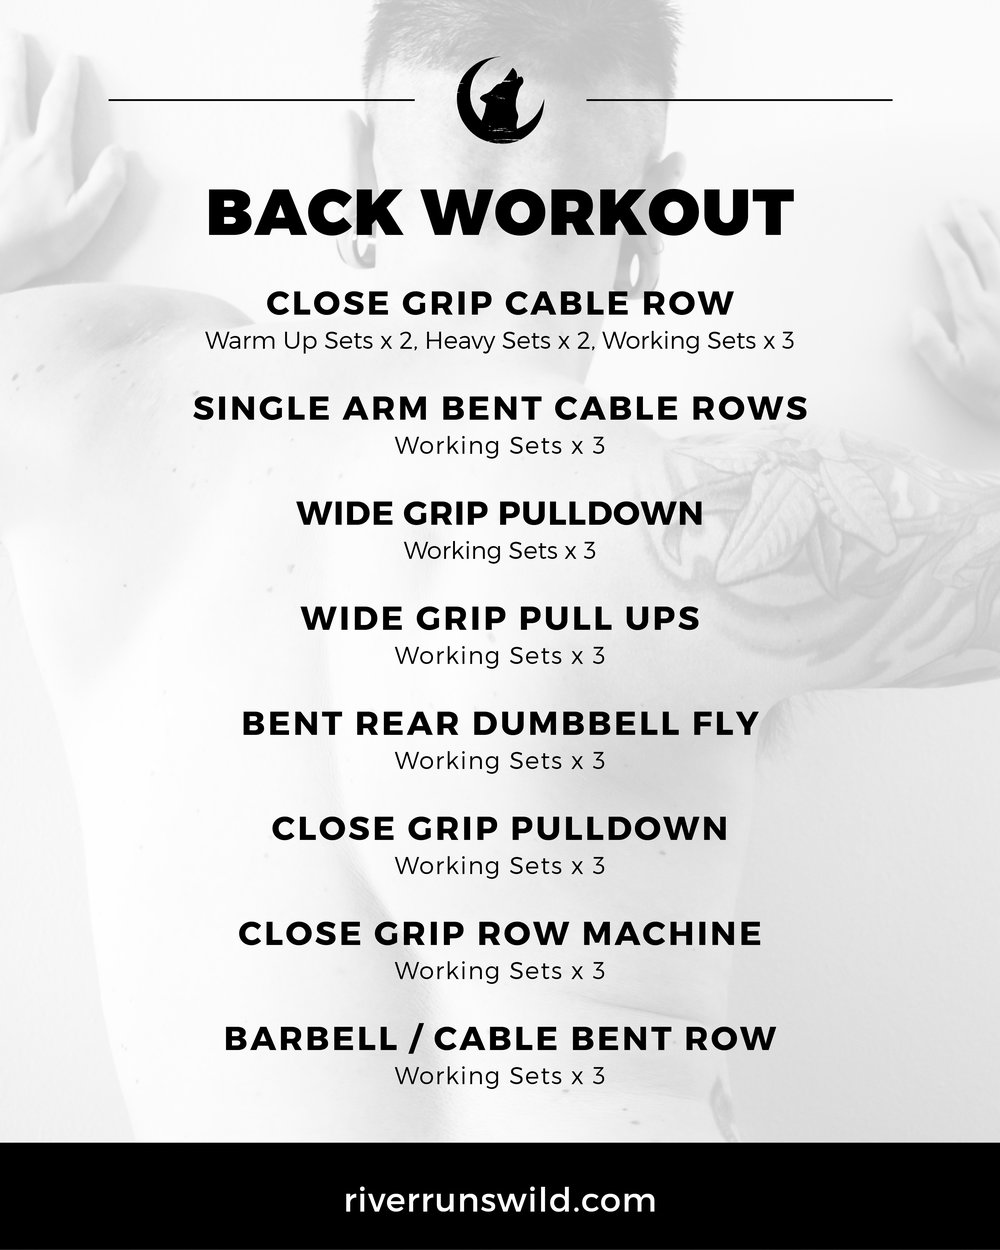 Feel free to save this image and use it next time you have a back day.